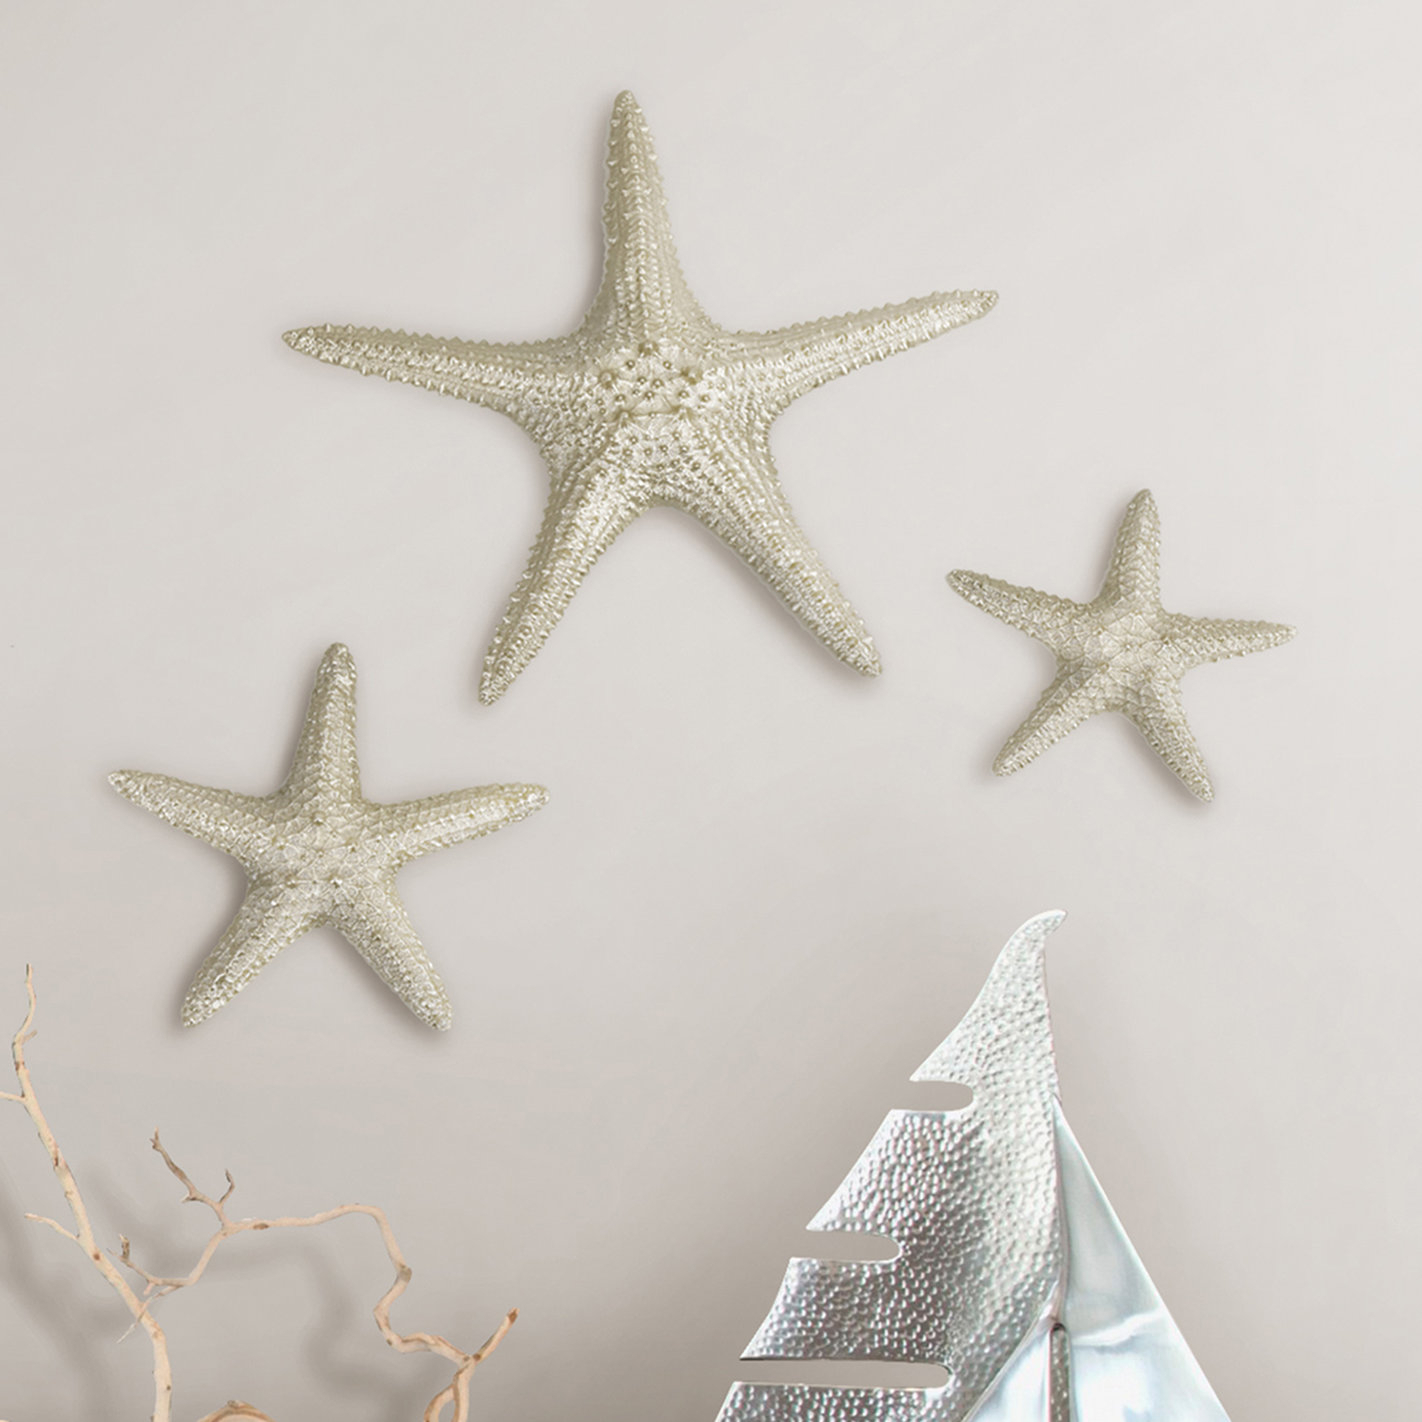 3 Piece Wall Decor Set | Wayfair Pertaining To 3 Piece Star Wall Decor Sets (View 3 of 30)